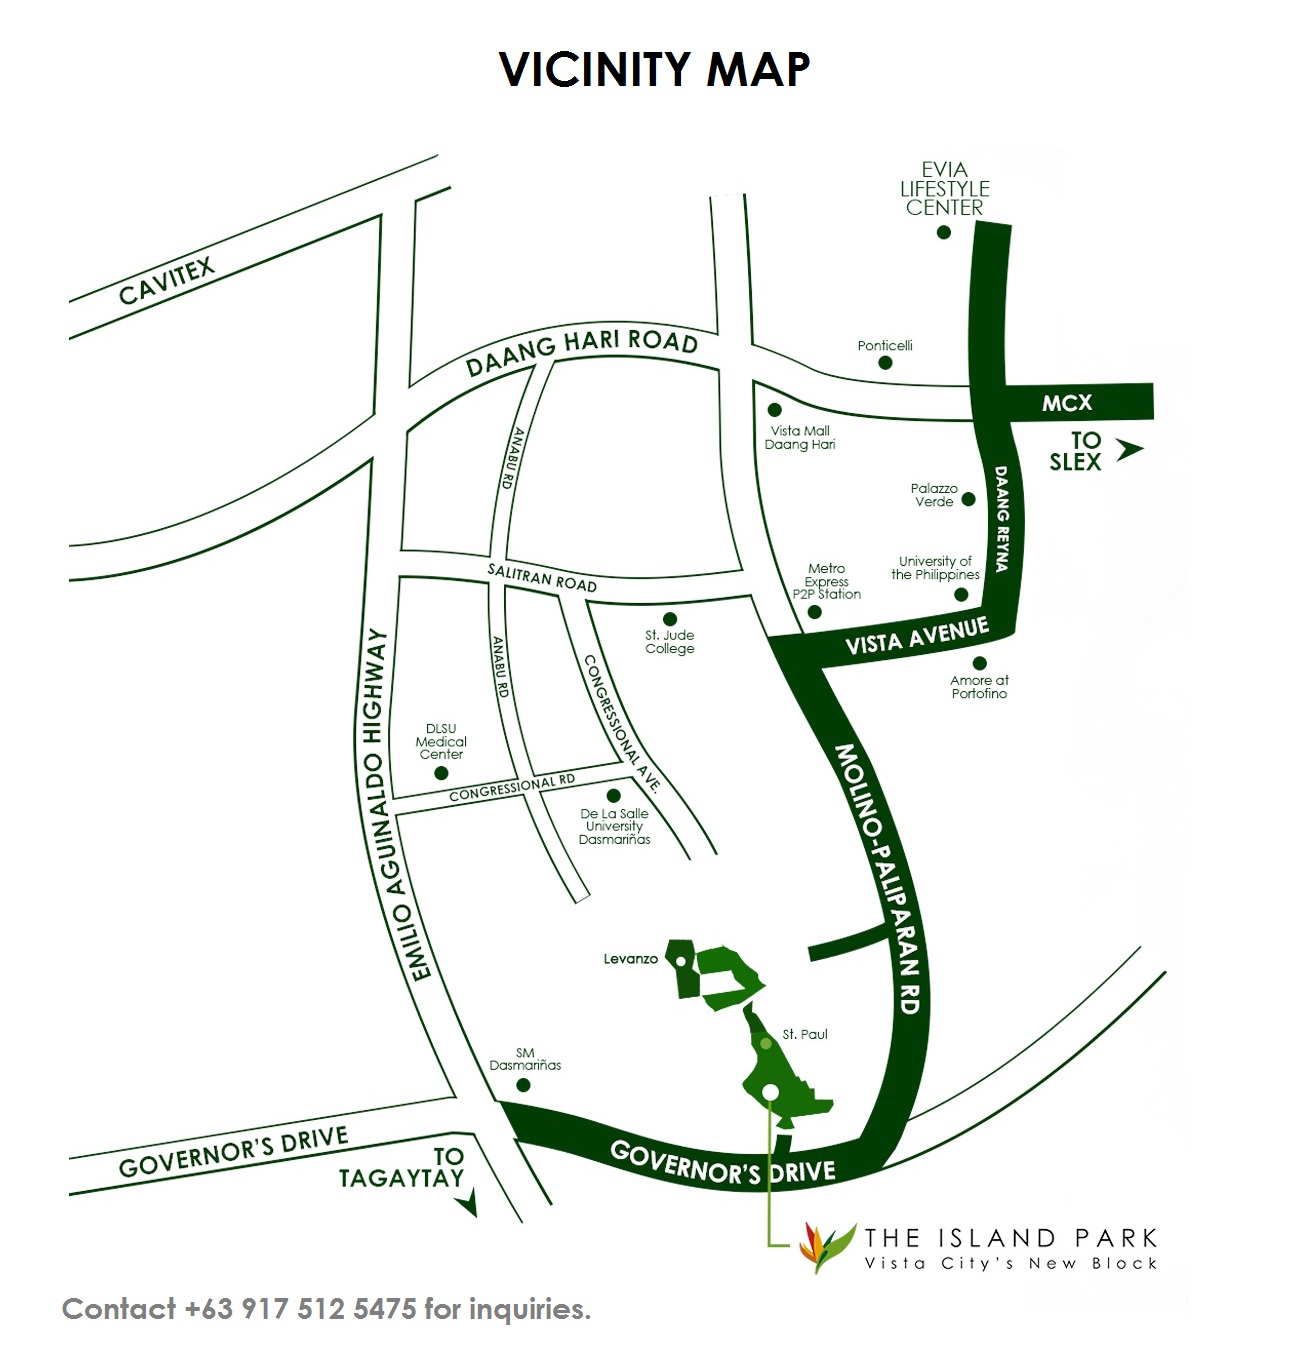 Vicinity Map Location Levanzo at The Island Park - Designer 166 Sf | Crown Asia Prime House for Sale Dasmarinas Cavite